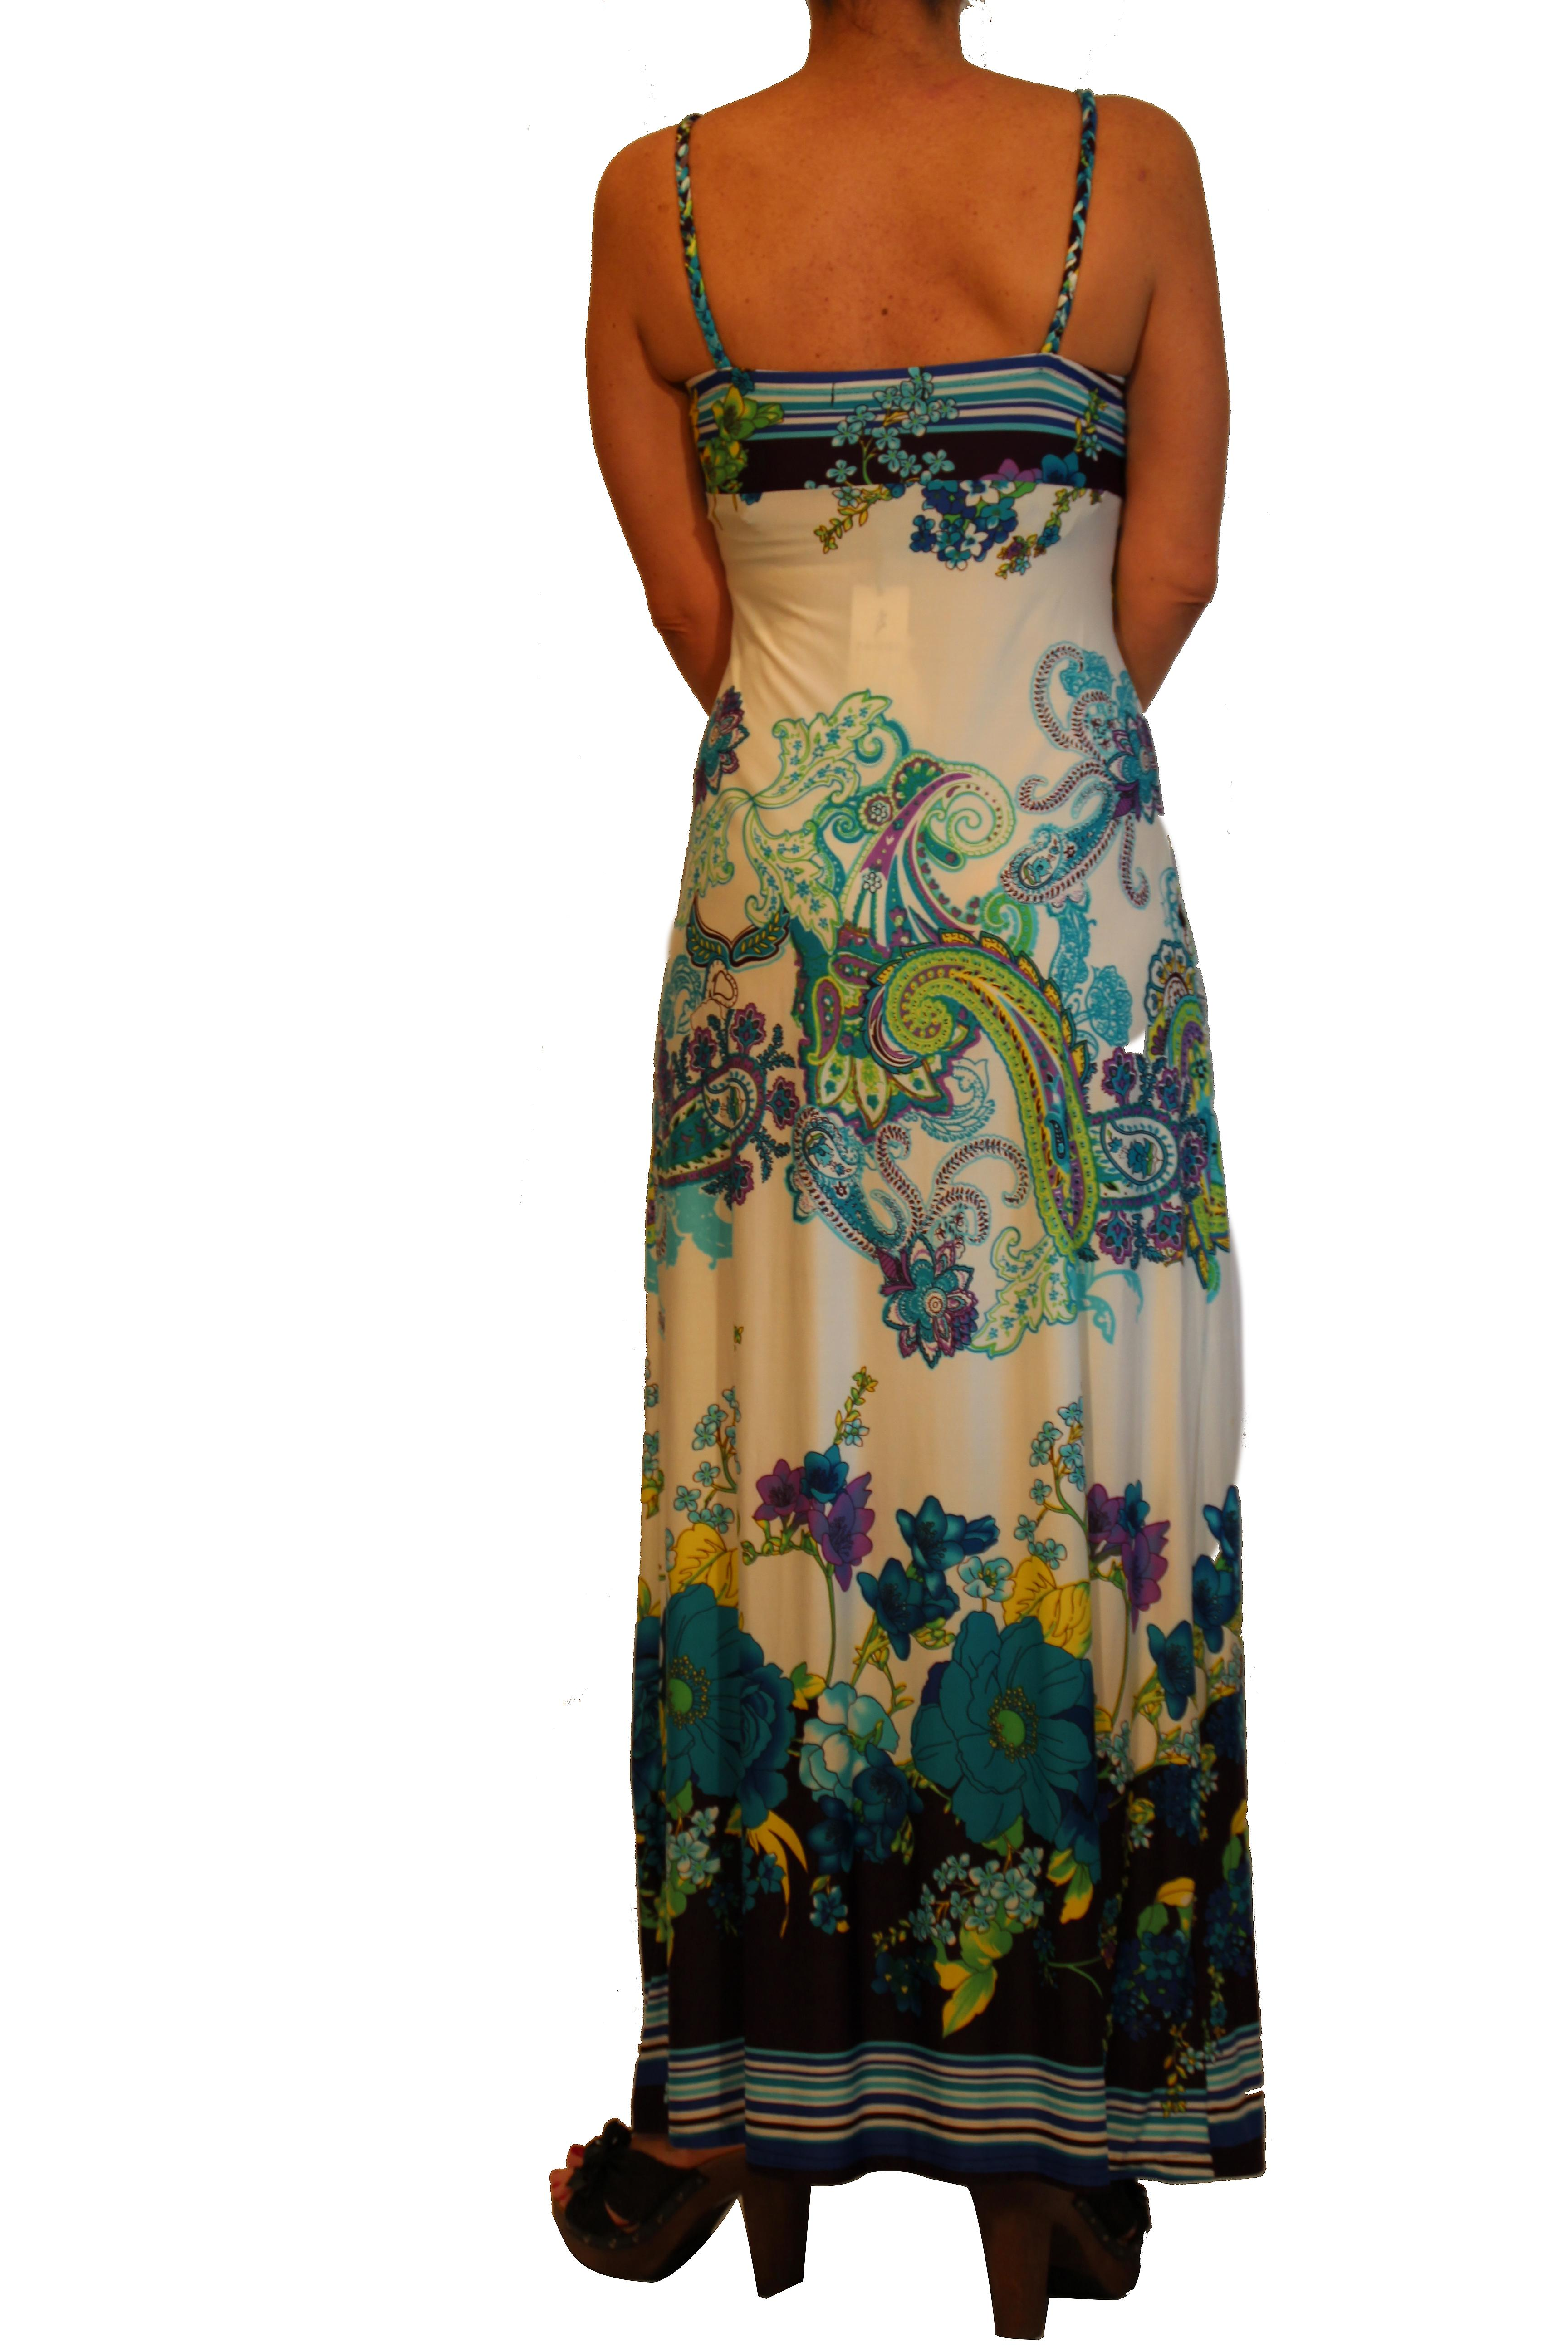 Waooh - Fashion - Long flower dress